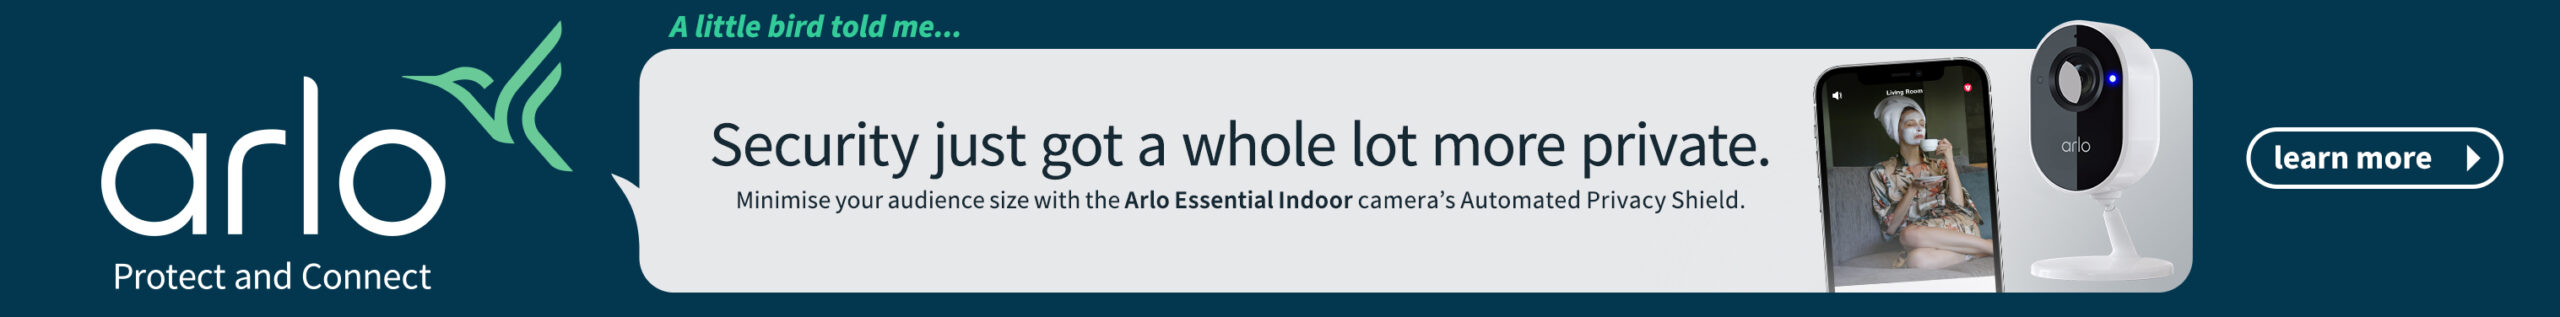 ARL0355 Arlo ESS Indoor Generic Banner 728x90 V4 scaled Thousands Told BigPond Account Suspended